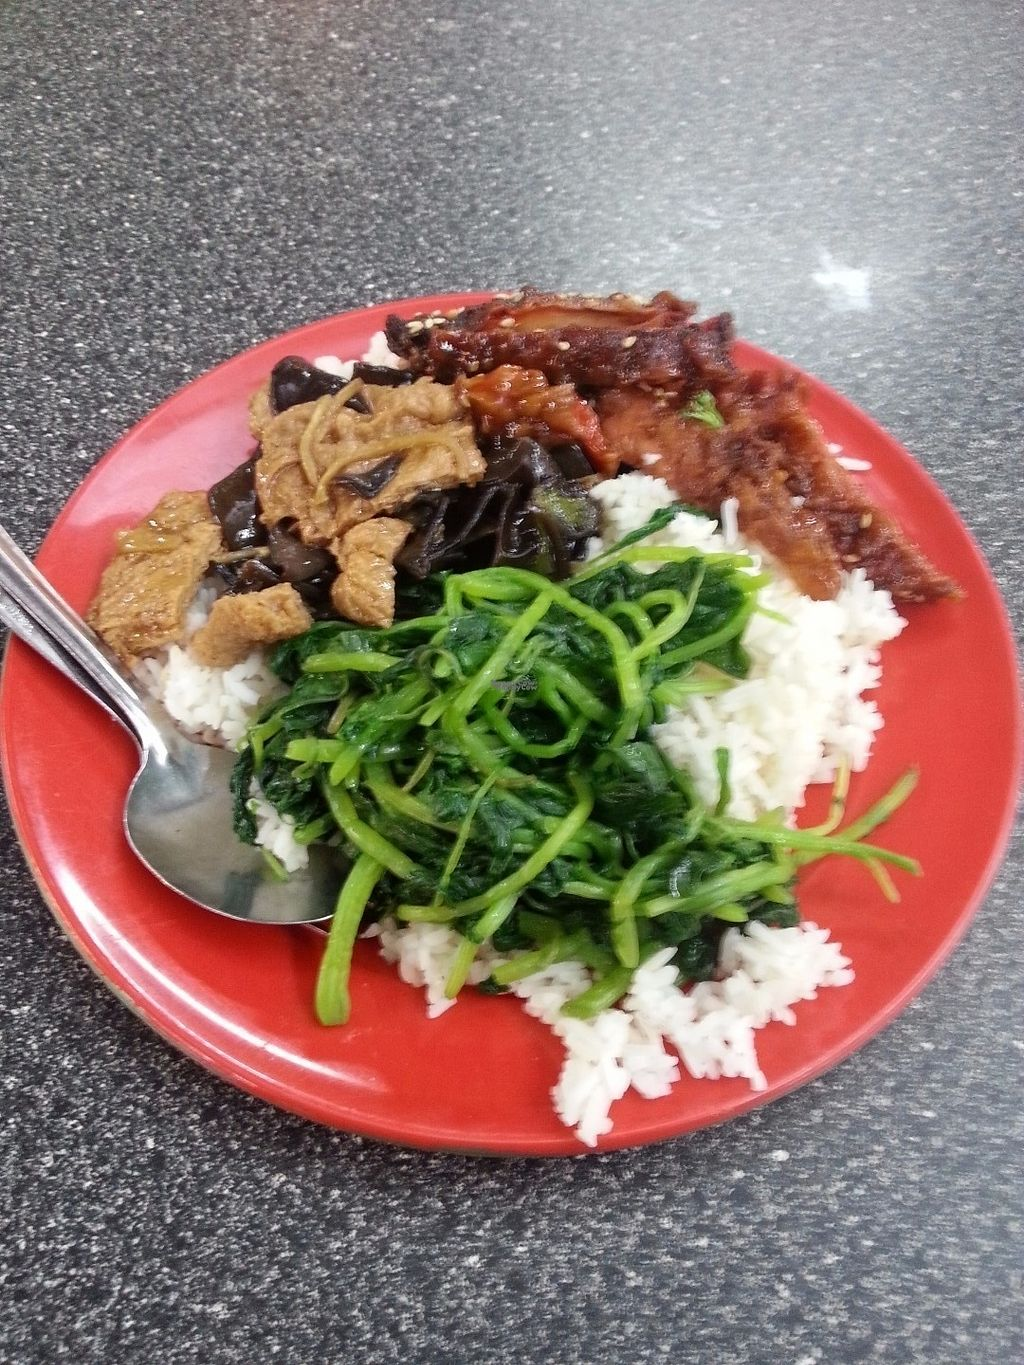 """Photo of Le Tian Vegetarian Stall  by <a href=""""/members/profile/Satrai"""">Satrai</a> <br/>Le Tian <br/> September 1, 2016  - <a href='/contact/abuse/image/17293/172919'>Report</a>"""